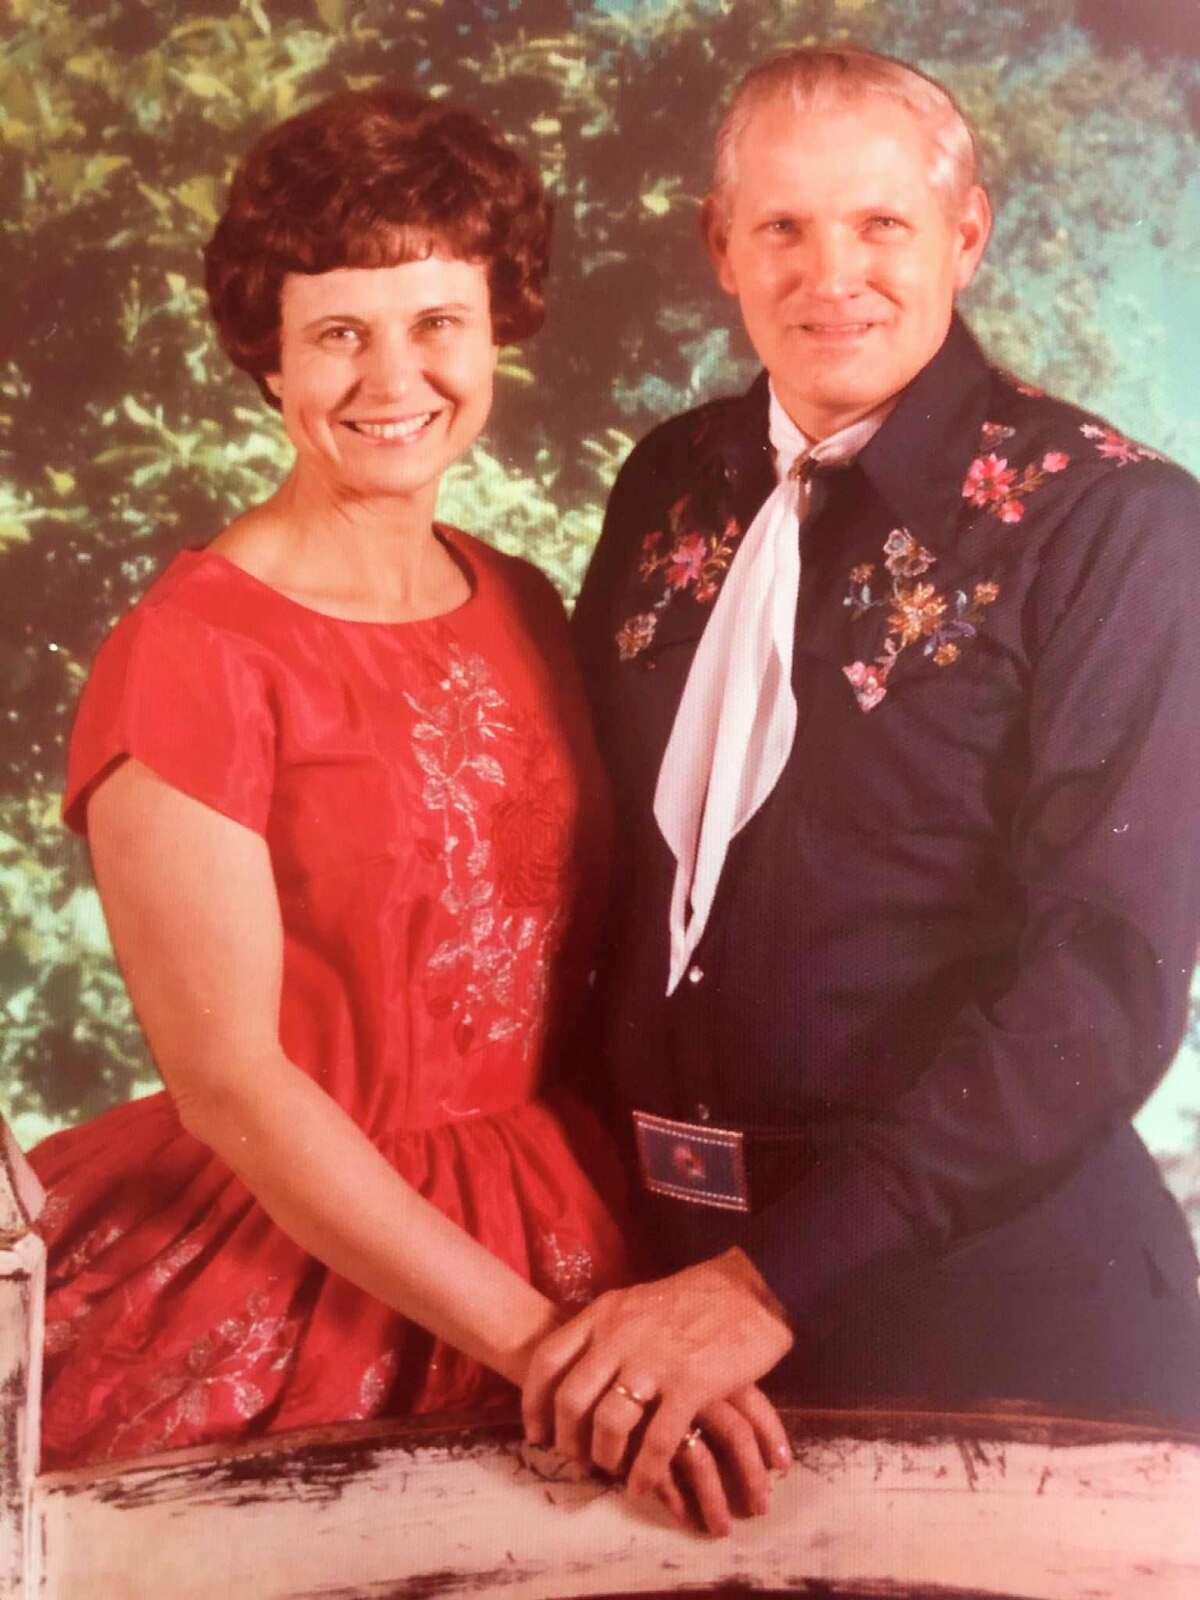 """Leona and Wilbur Seamster are photographed at a square dance convention. From 1978 to 1982, they were assistant chairmen for the 1982 National Square Dance Convention to be held in Detroit at Cobo Hall. Leona said: """"For the next four years, we traveled and danced all over the United States promoting Michigan's 1982 convention."""" Their efforts were rewarded with 25,000 enthusiastic square dancers filling Cobo Hall in June 1982. (Photo provided)"""